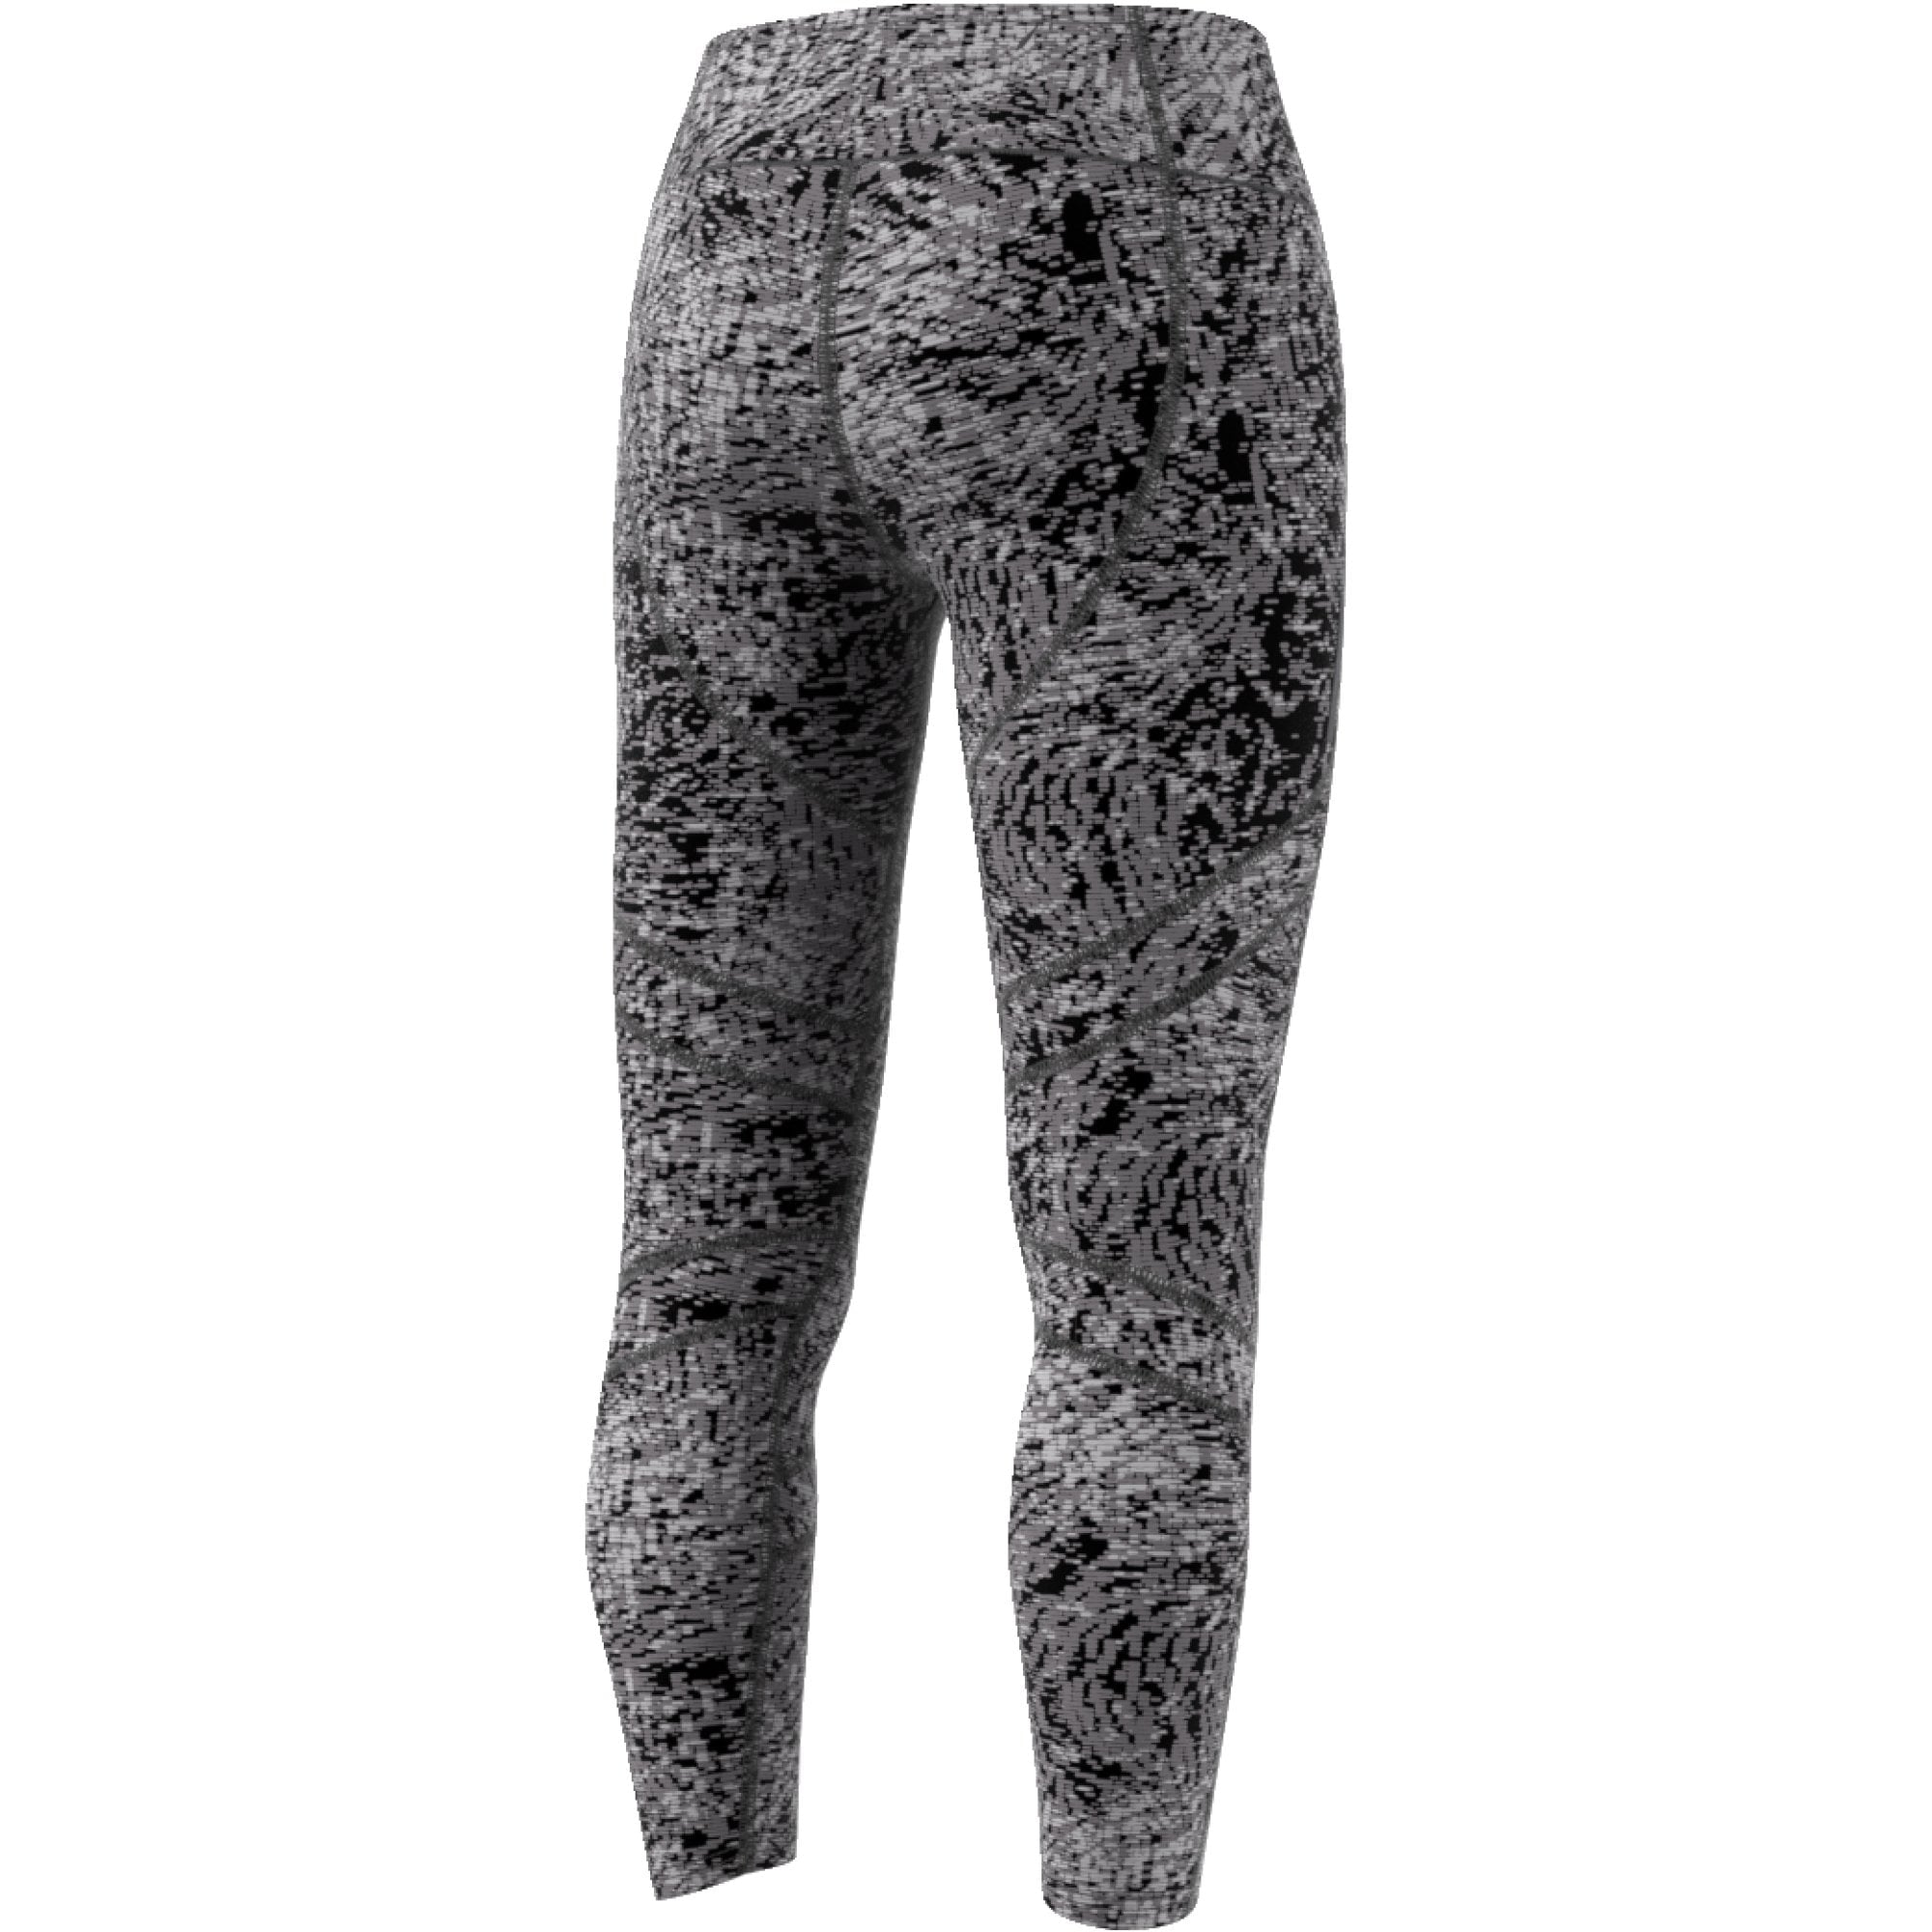 141e906428128 ADIDAS WOMEN'S RUNNING HOW WE DO 7/8 PRINTED BLACK TIGHTS – INSPORT